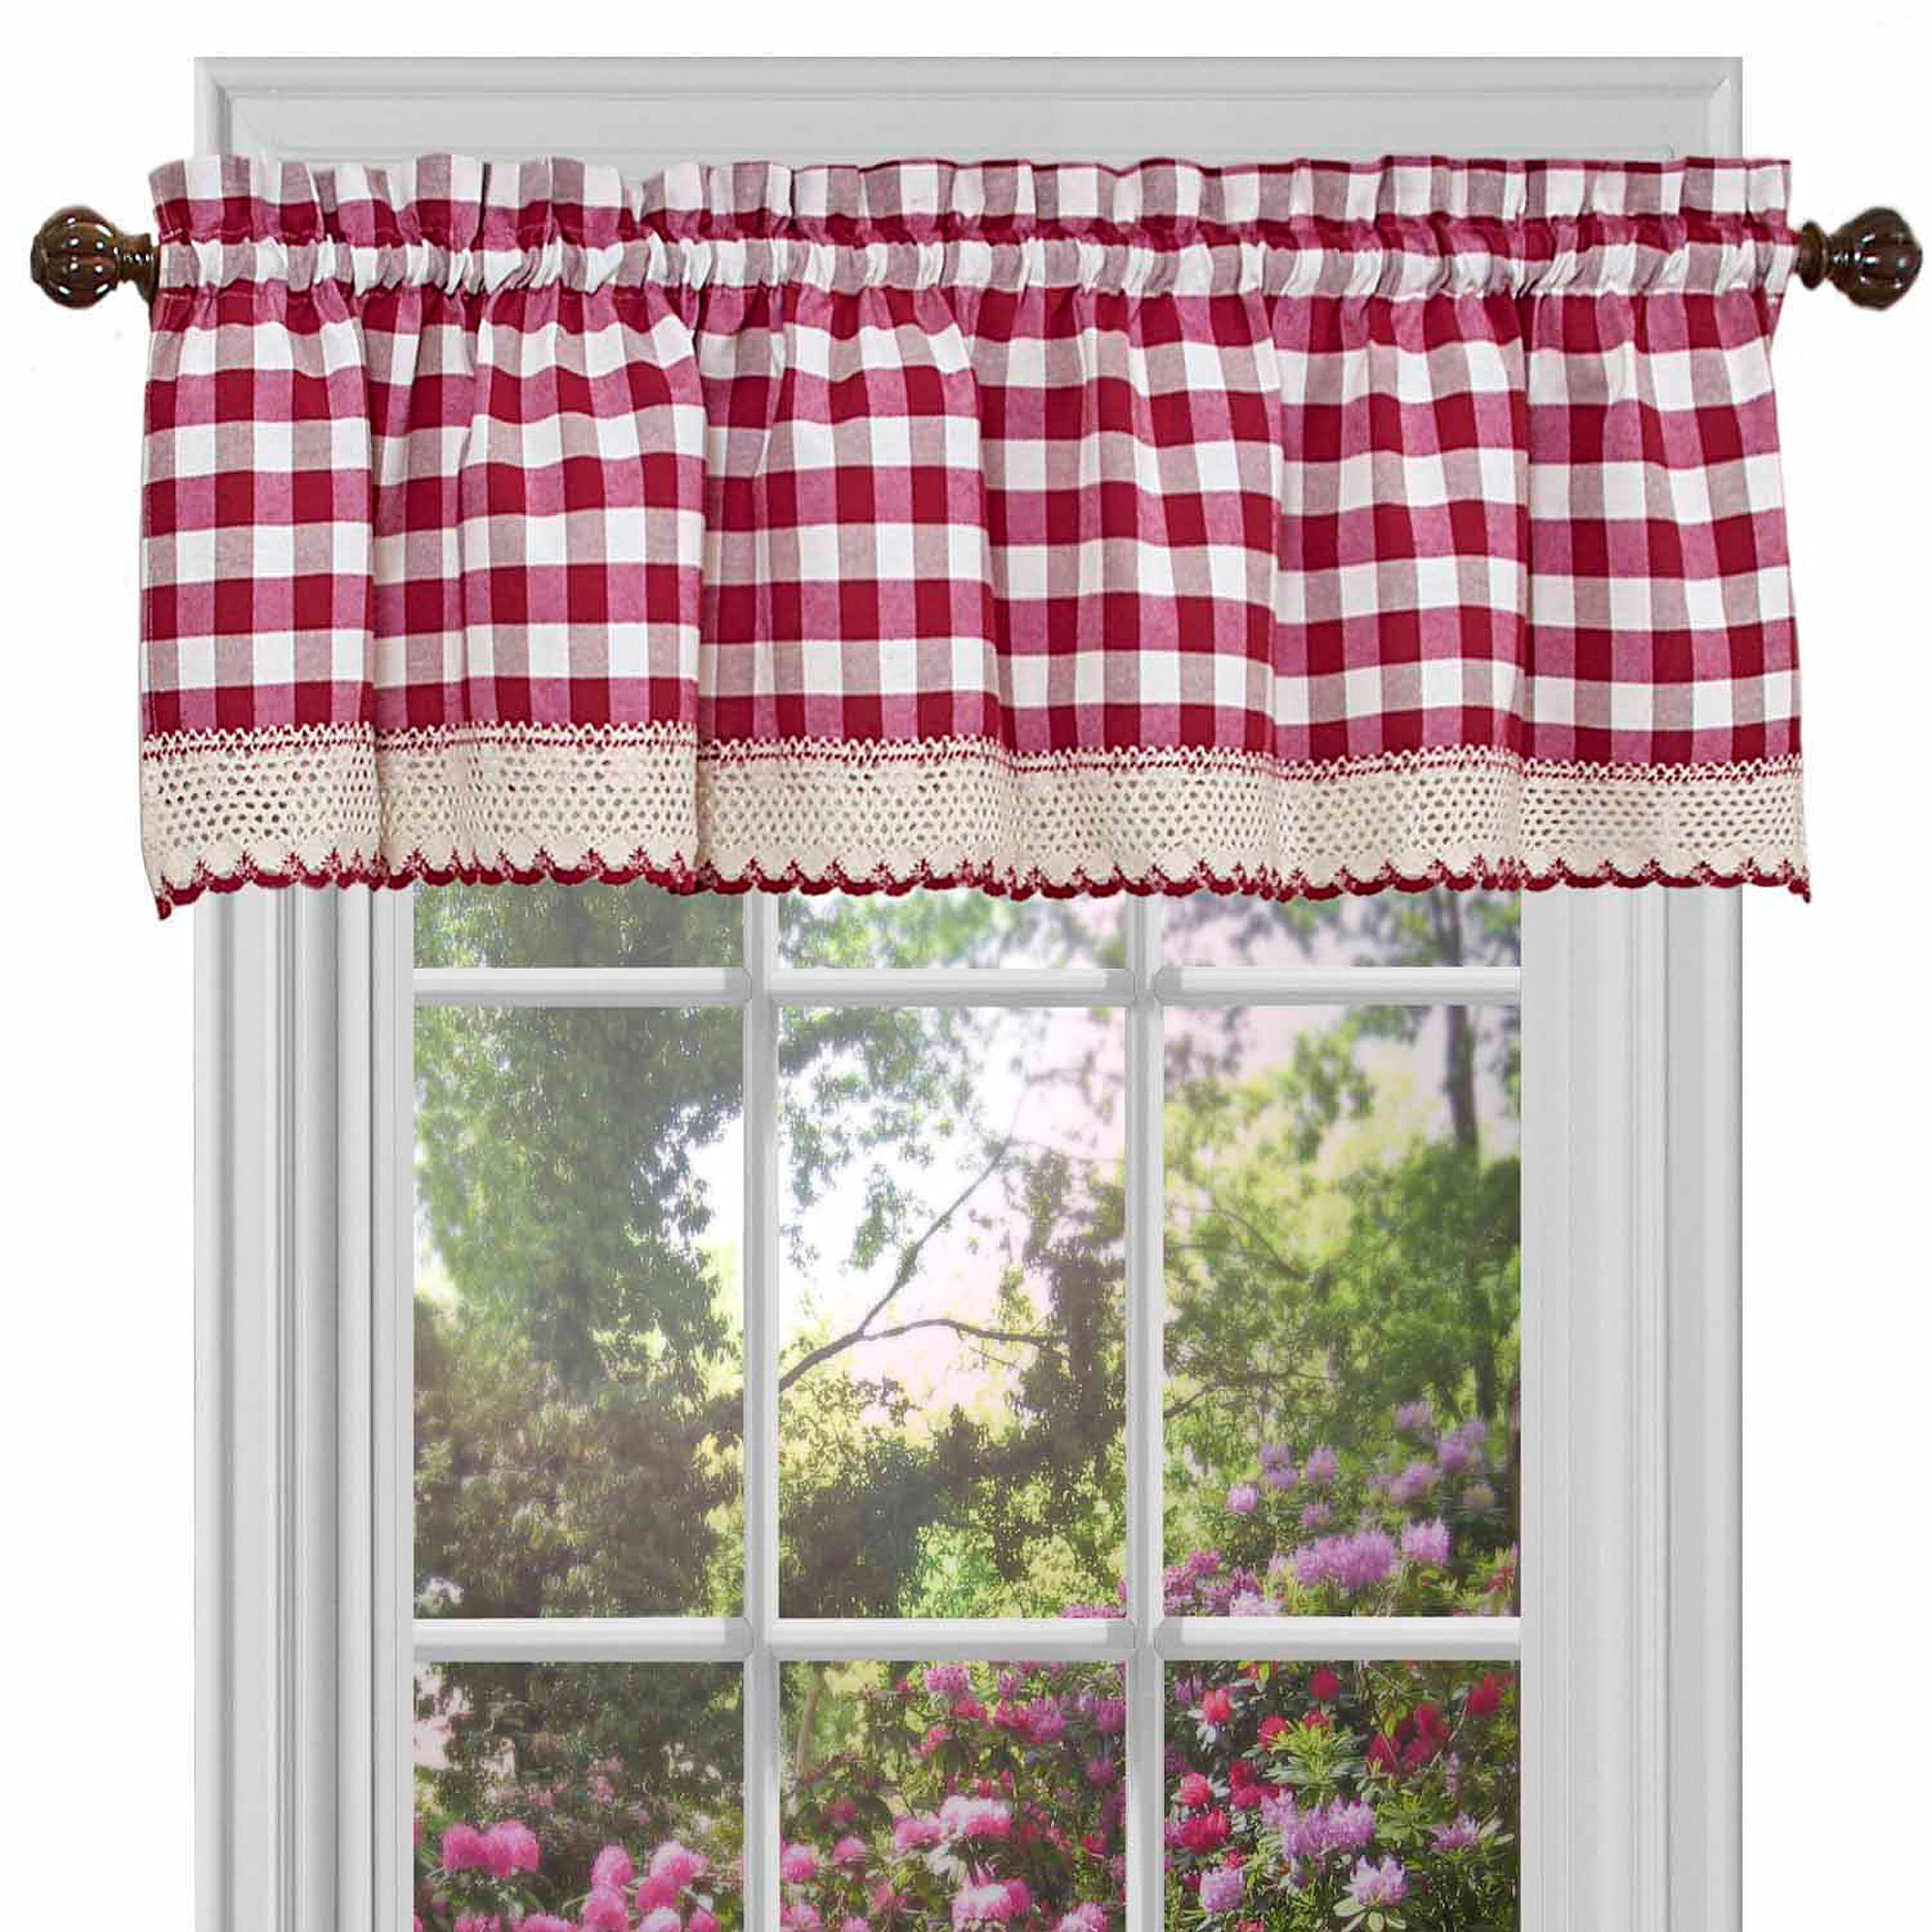 fascinating Red Curtains Valance Part - 7: Achim Buffalo Check Window Curtain Valance - 58x14 - Walmart.com